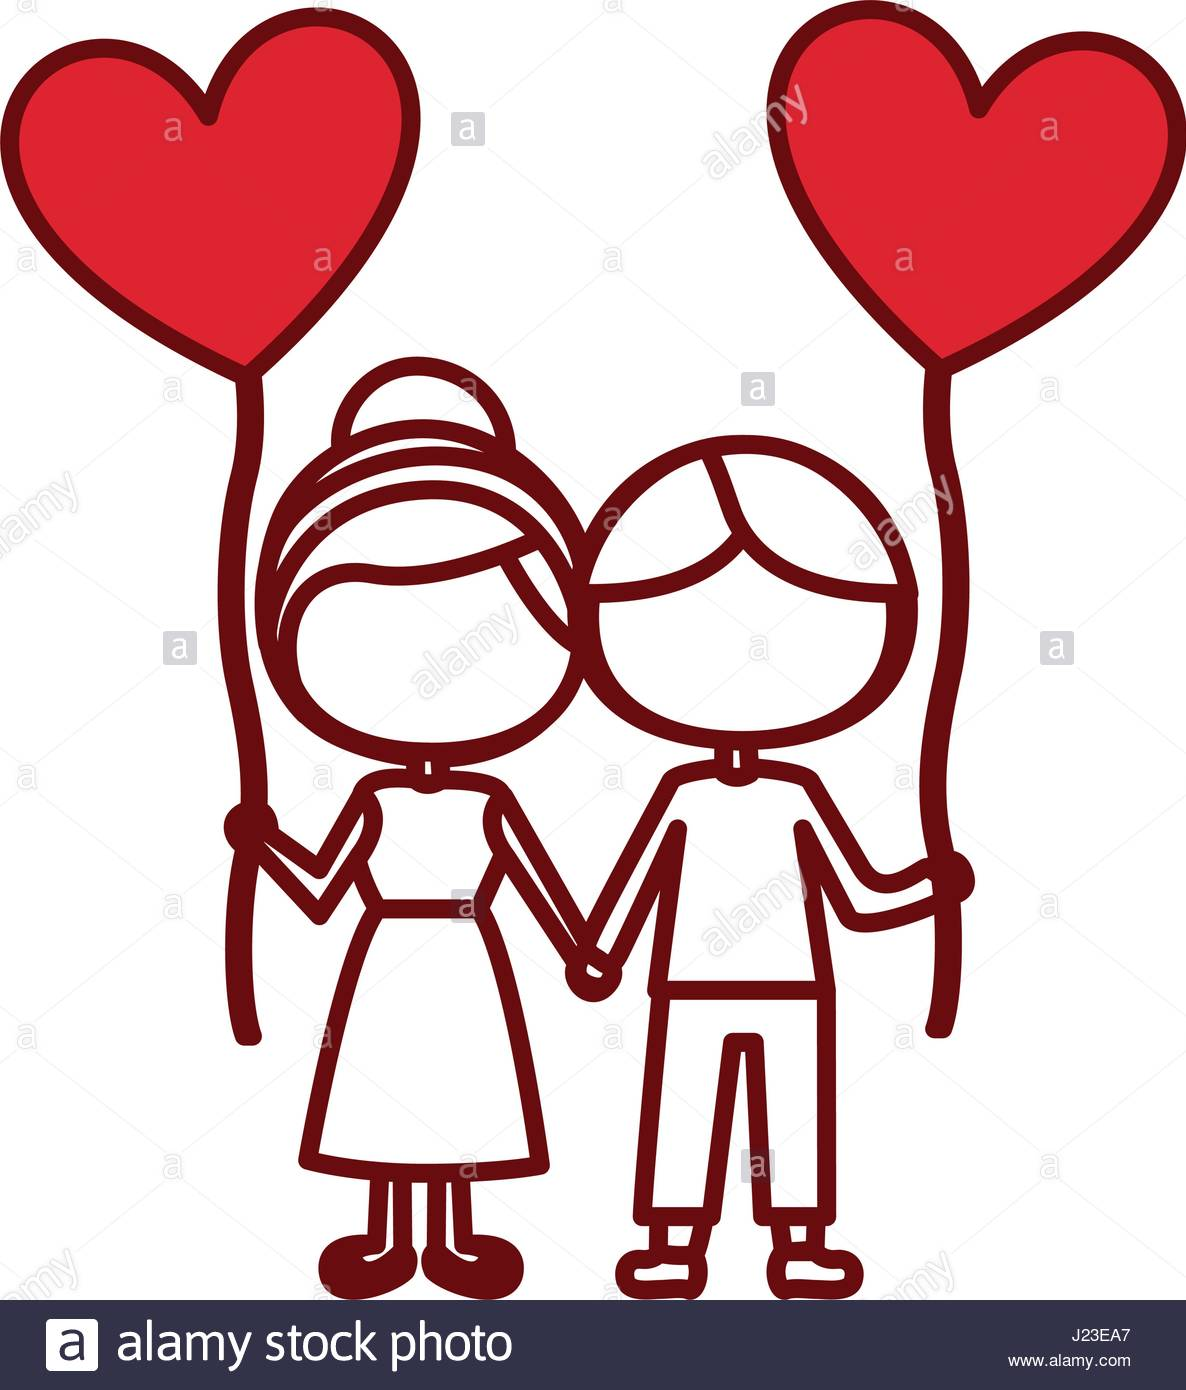 1186x1390 Red Silhouette Of Caricature Faceless Couple Of Boy And Girl